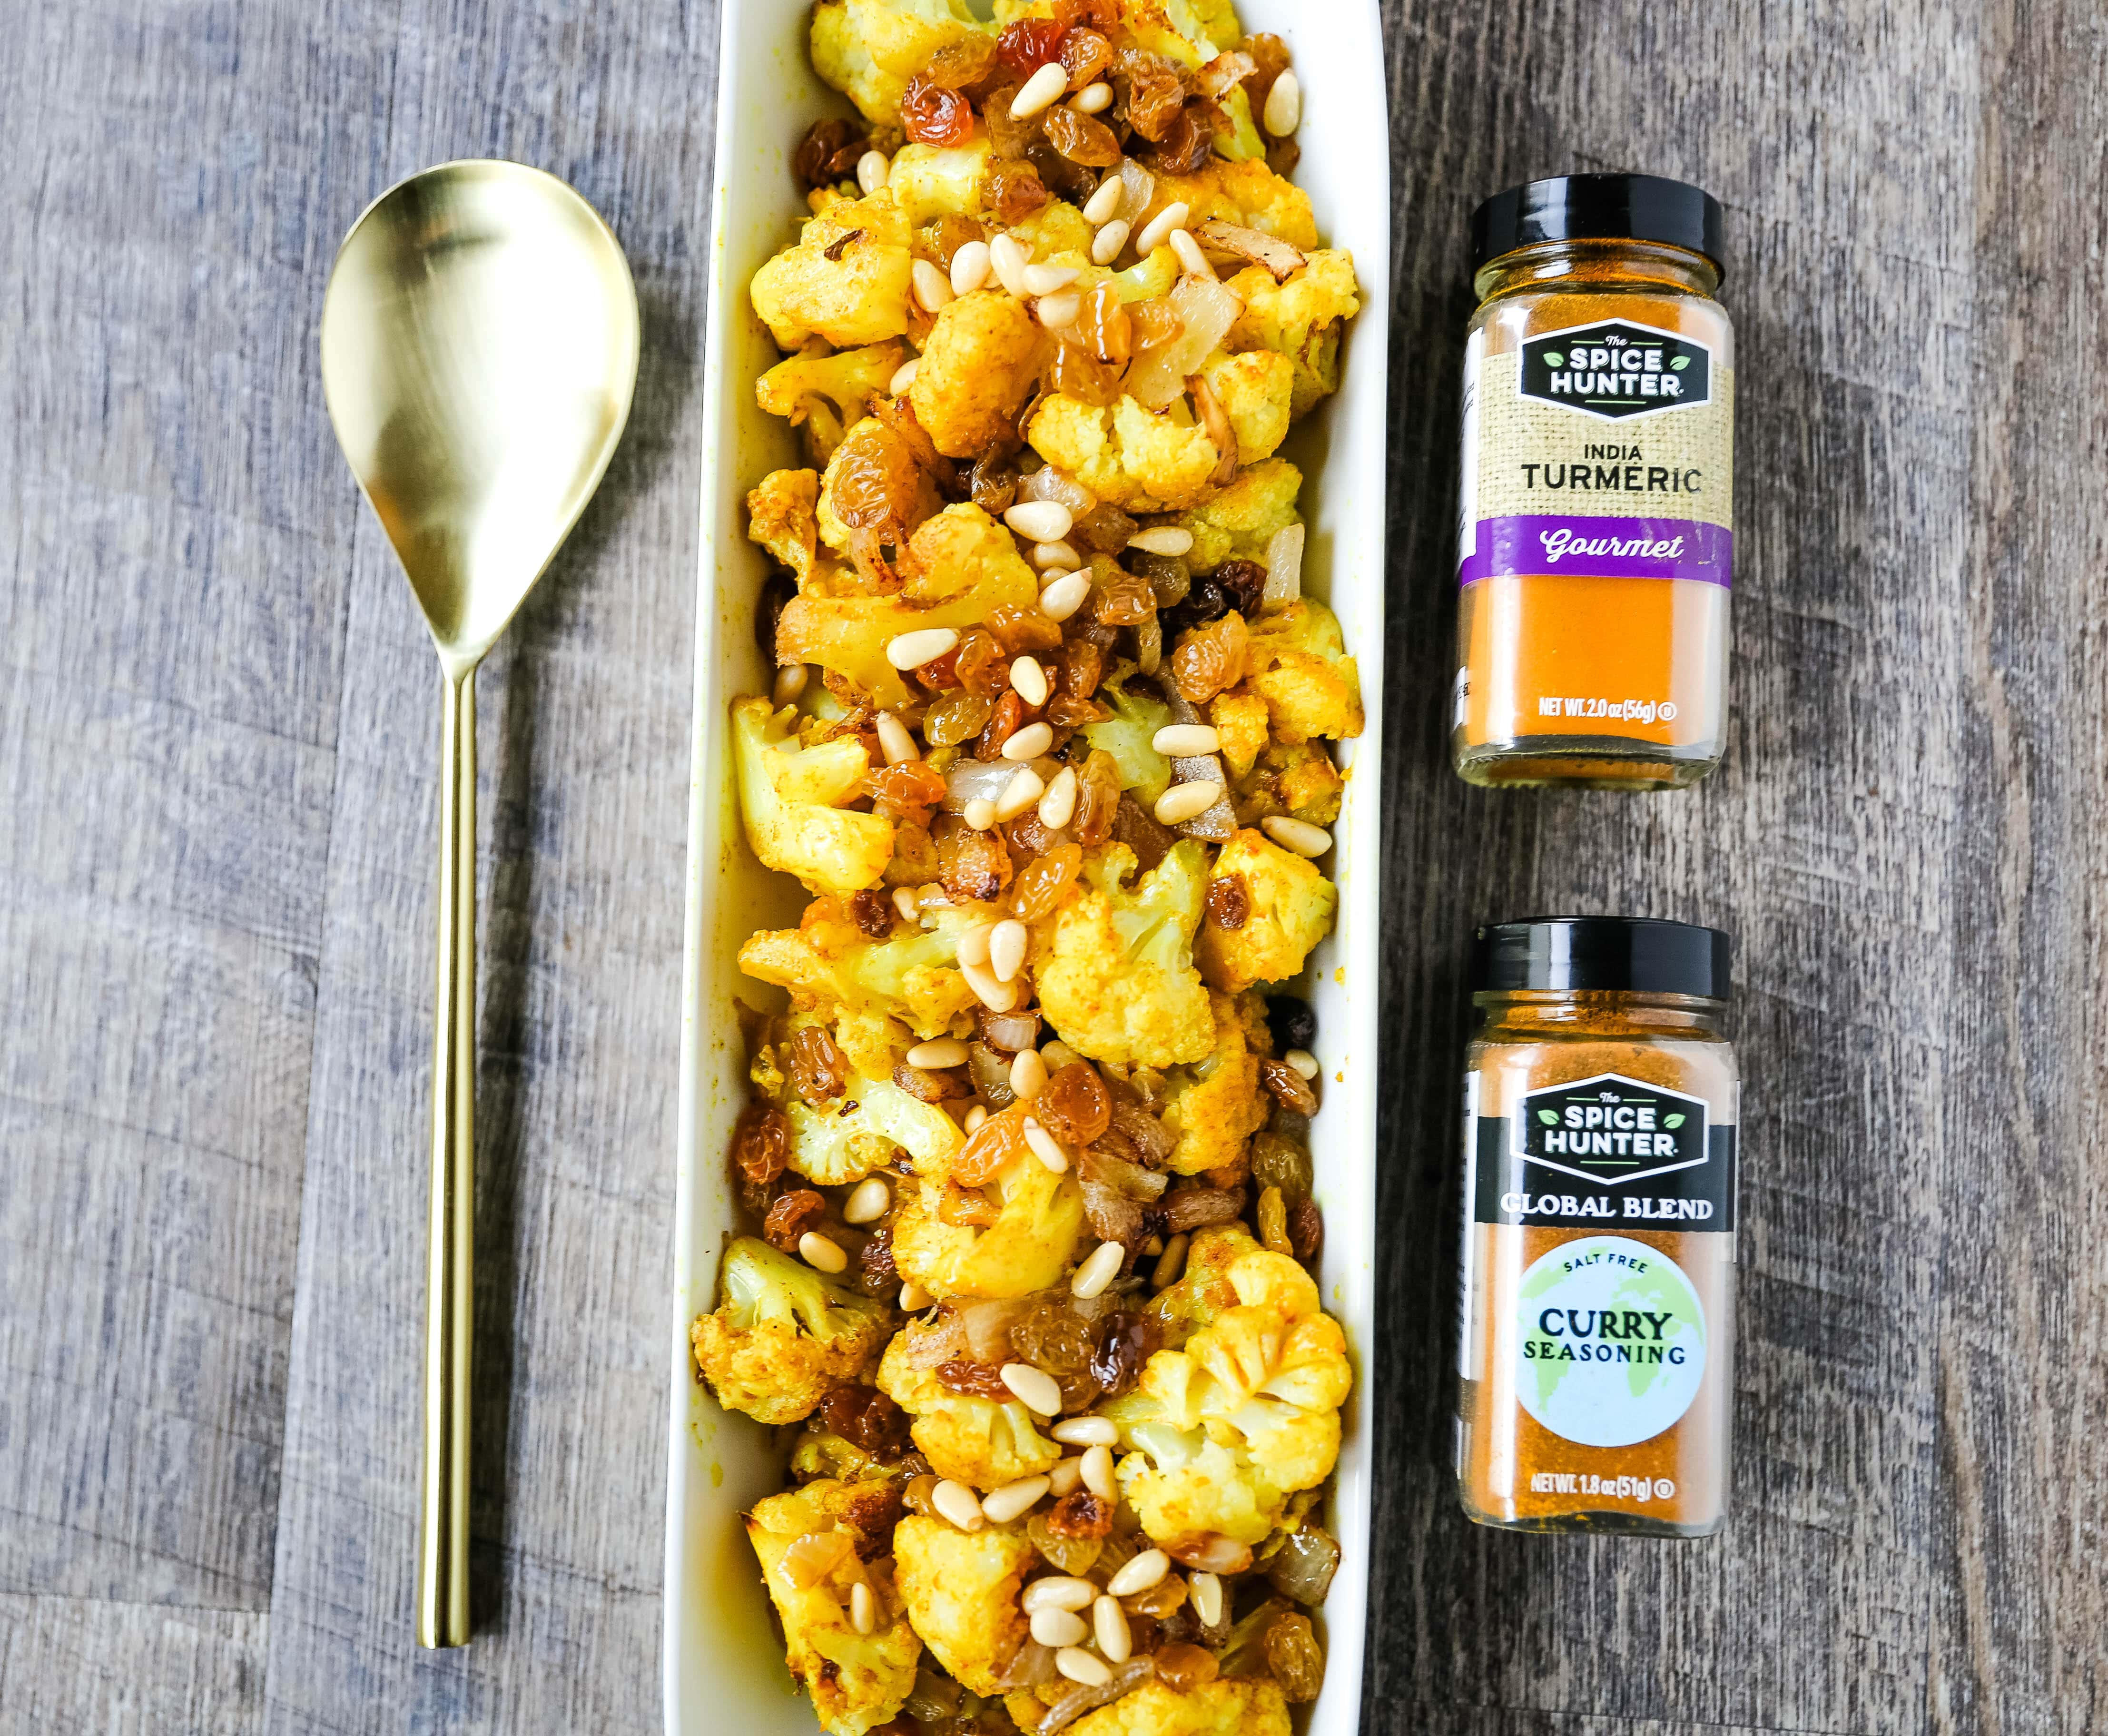 Turmeric Roasted Cauliflower Indian spiced roasted cauliflower with warm spices, caramelized onions, sweet golden raisins, and crunchy pine nuts. A flavorful, healthy side dish perfect for any occasion! www.modernhoney.com #cauliflower #sidedish #roastedvegetables #indianfood